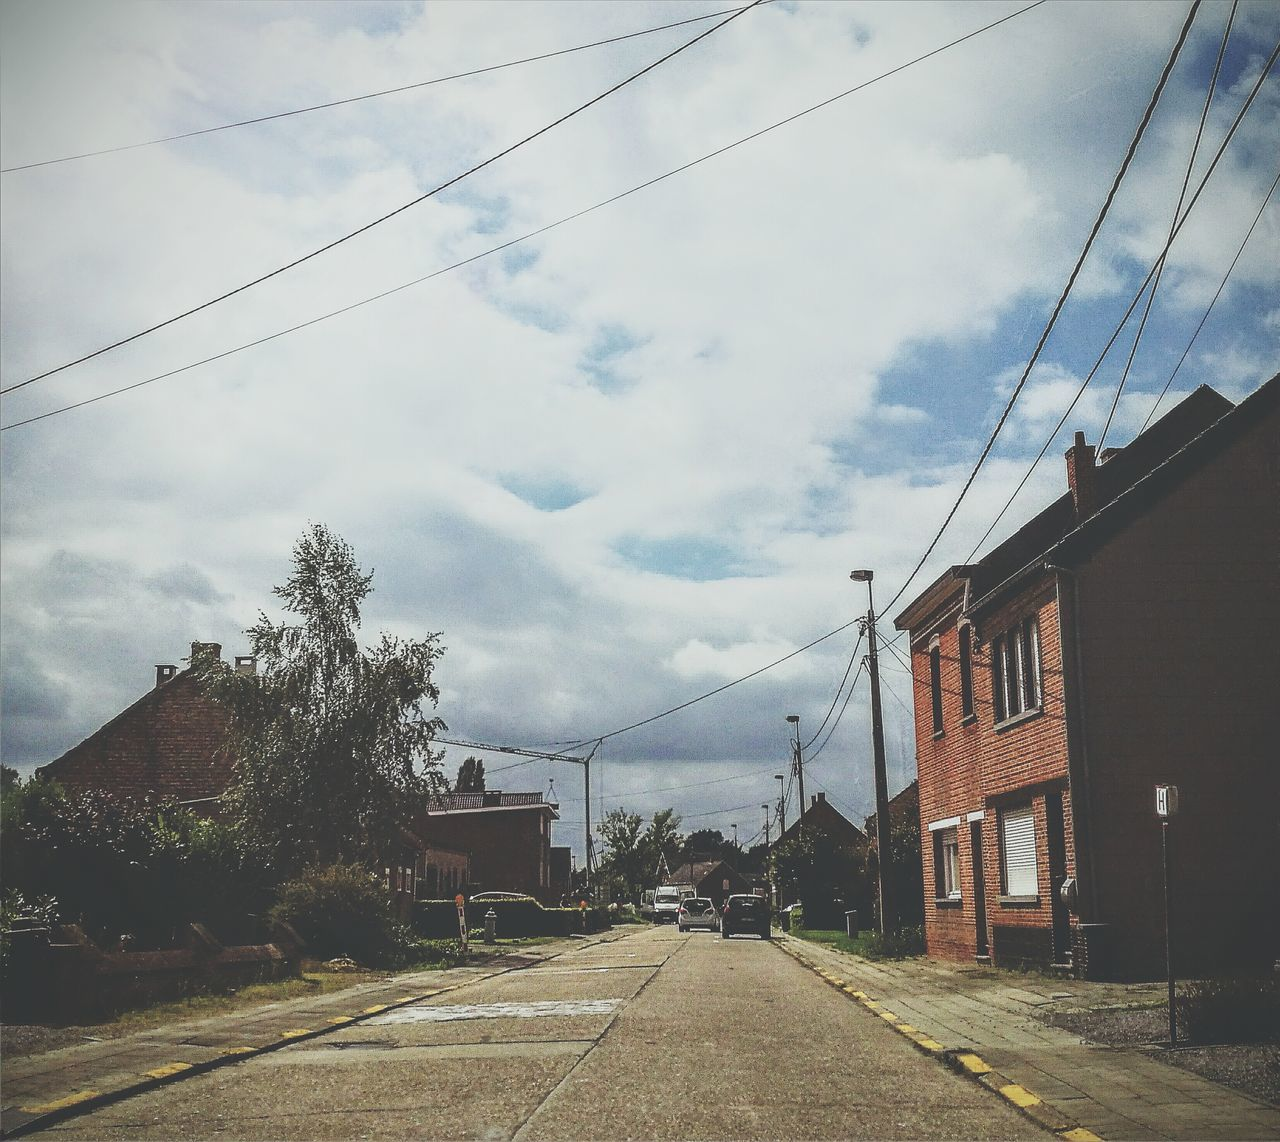 cable, sky, cloud - sky, power line, building exterior, architecture, built structure, transportation, road, outdoors, day, power supply, tree, telephone line, the way forward, street, electricity pylon, no people, nature, city